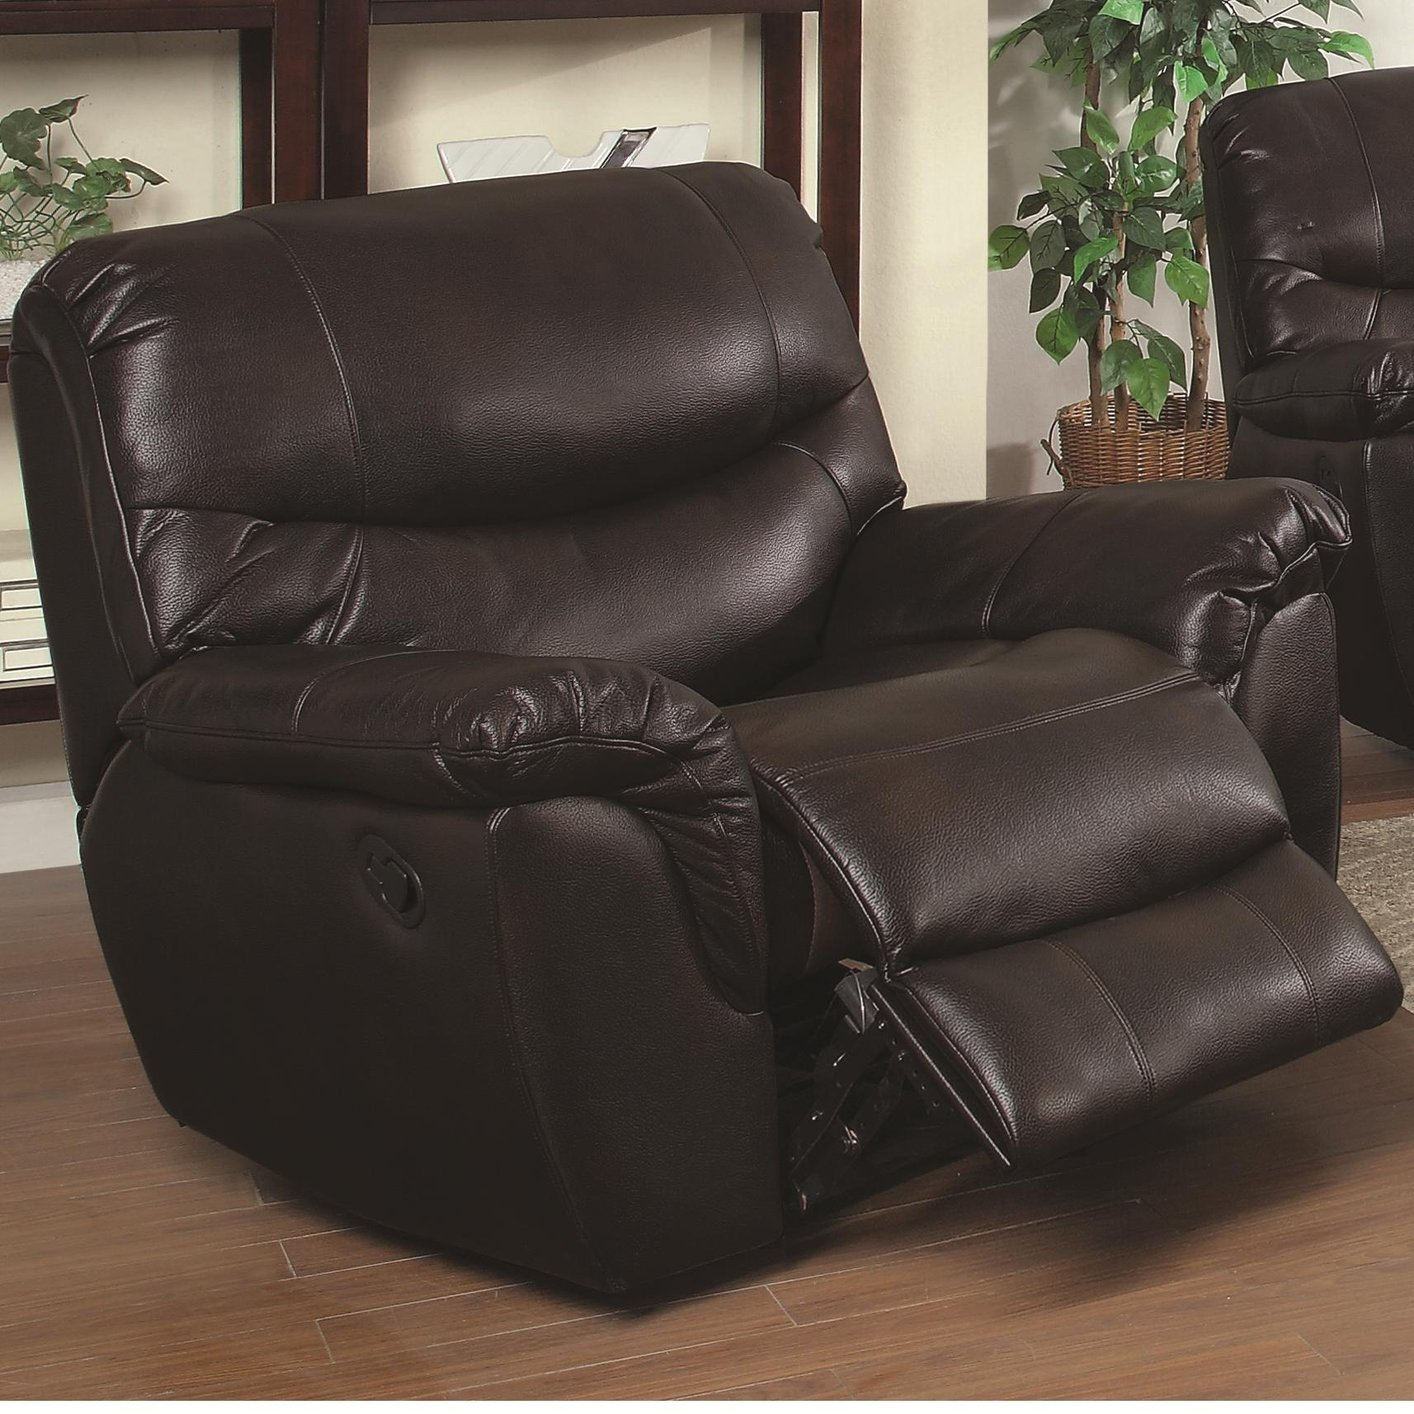 Coaster 601293 Brown Leather Glider Recliner Steal A Sofa Furniture Outlet Los Angeles Ca